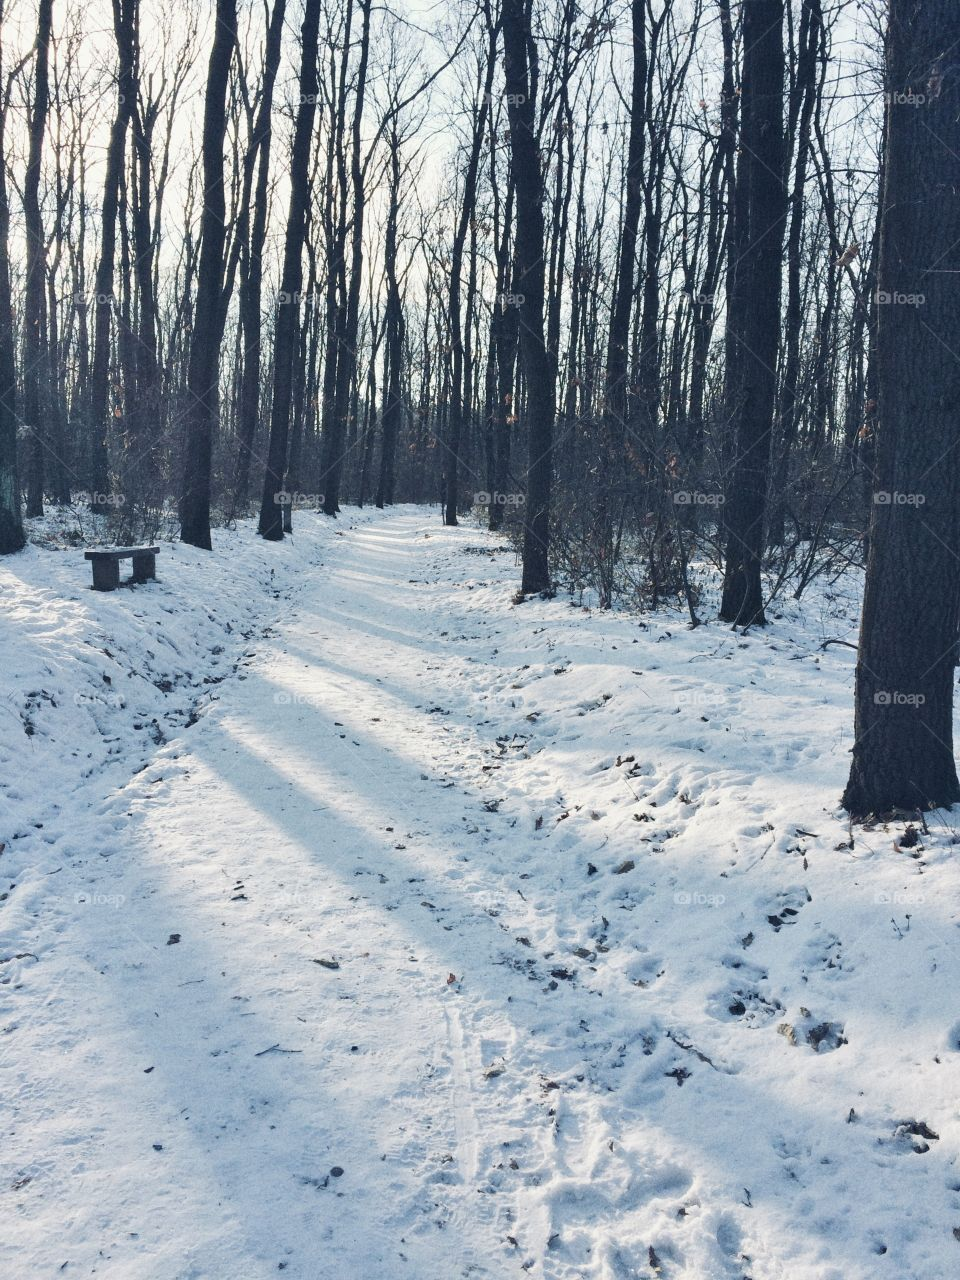 Oh, those snowy days! It's always nice to take a walk through the woods and  the snow all around you makes the walk even more special and magical.